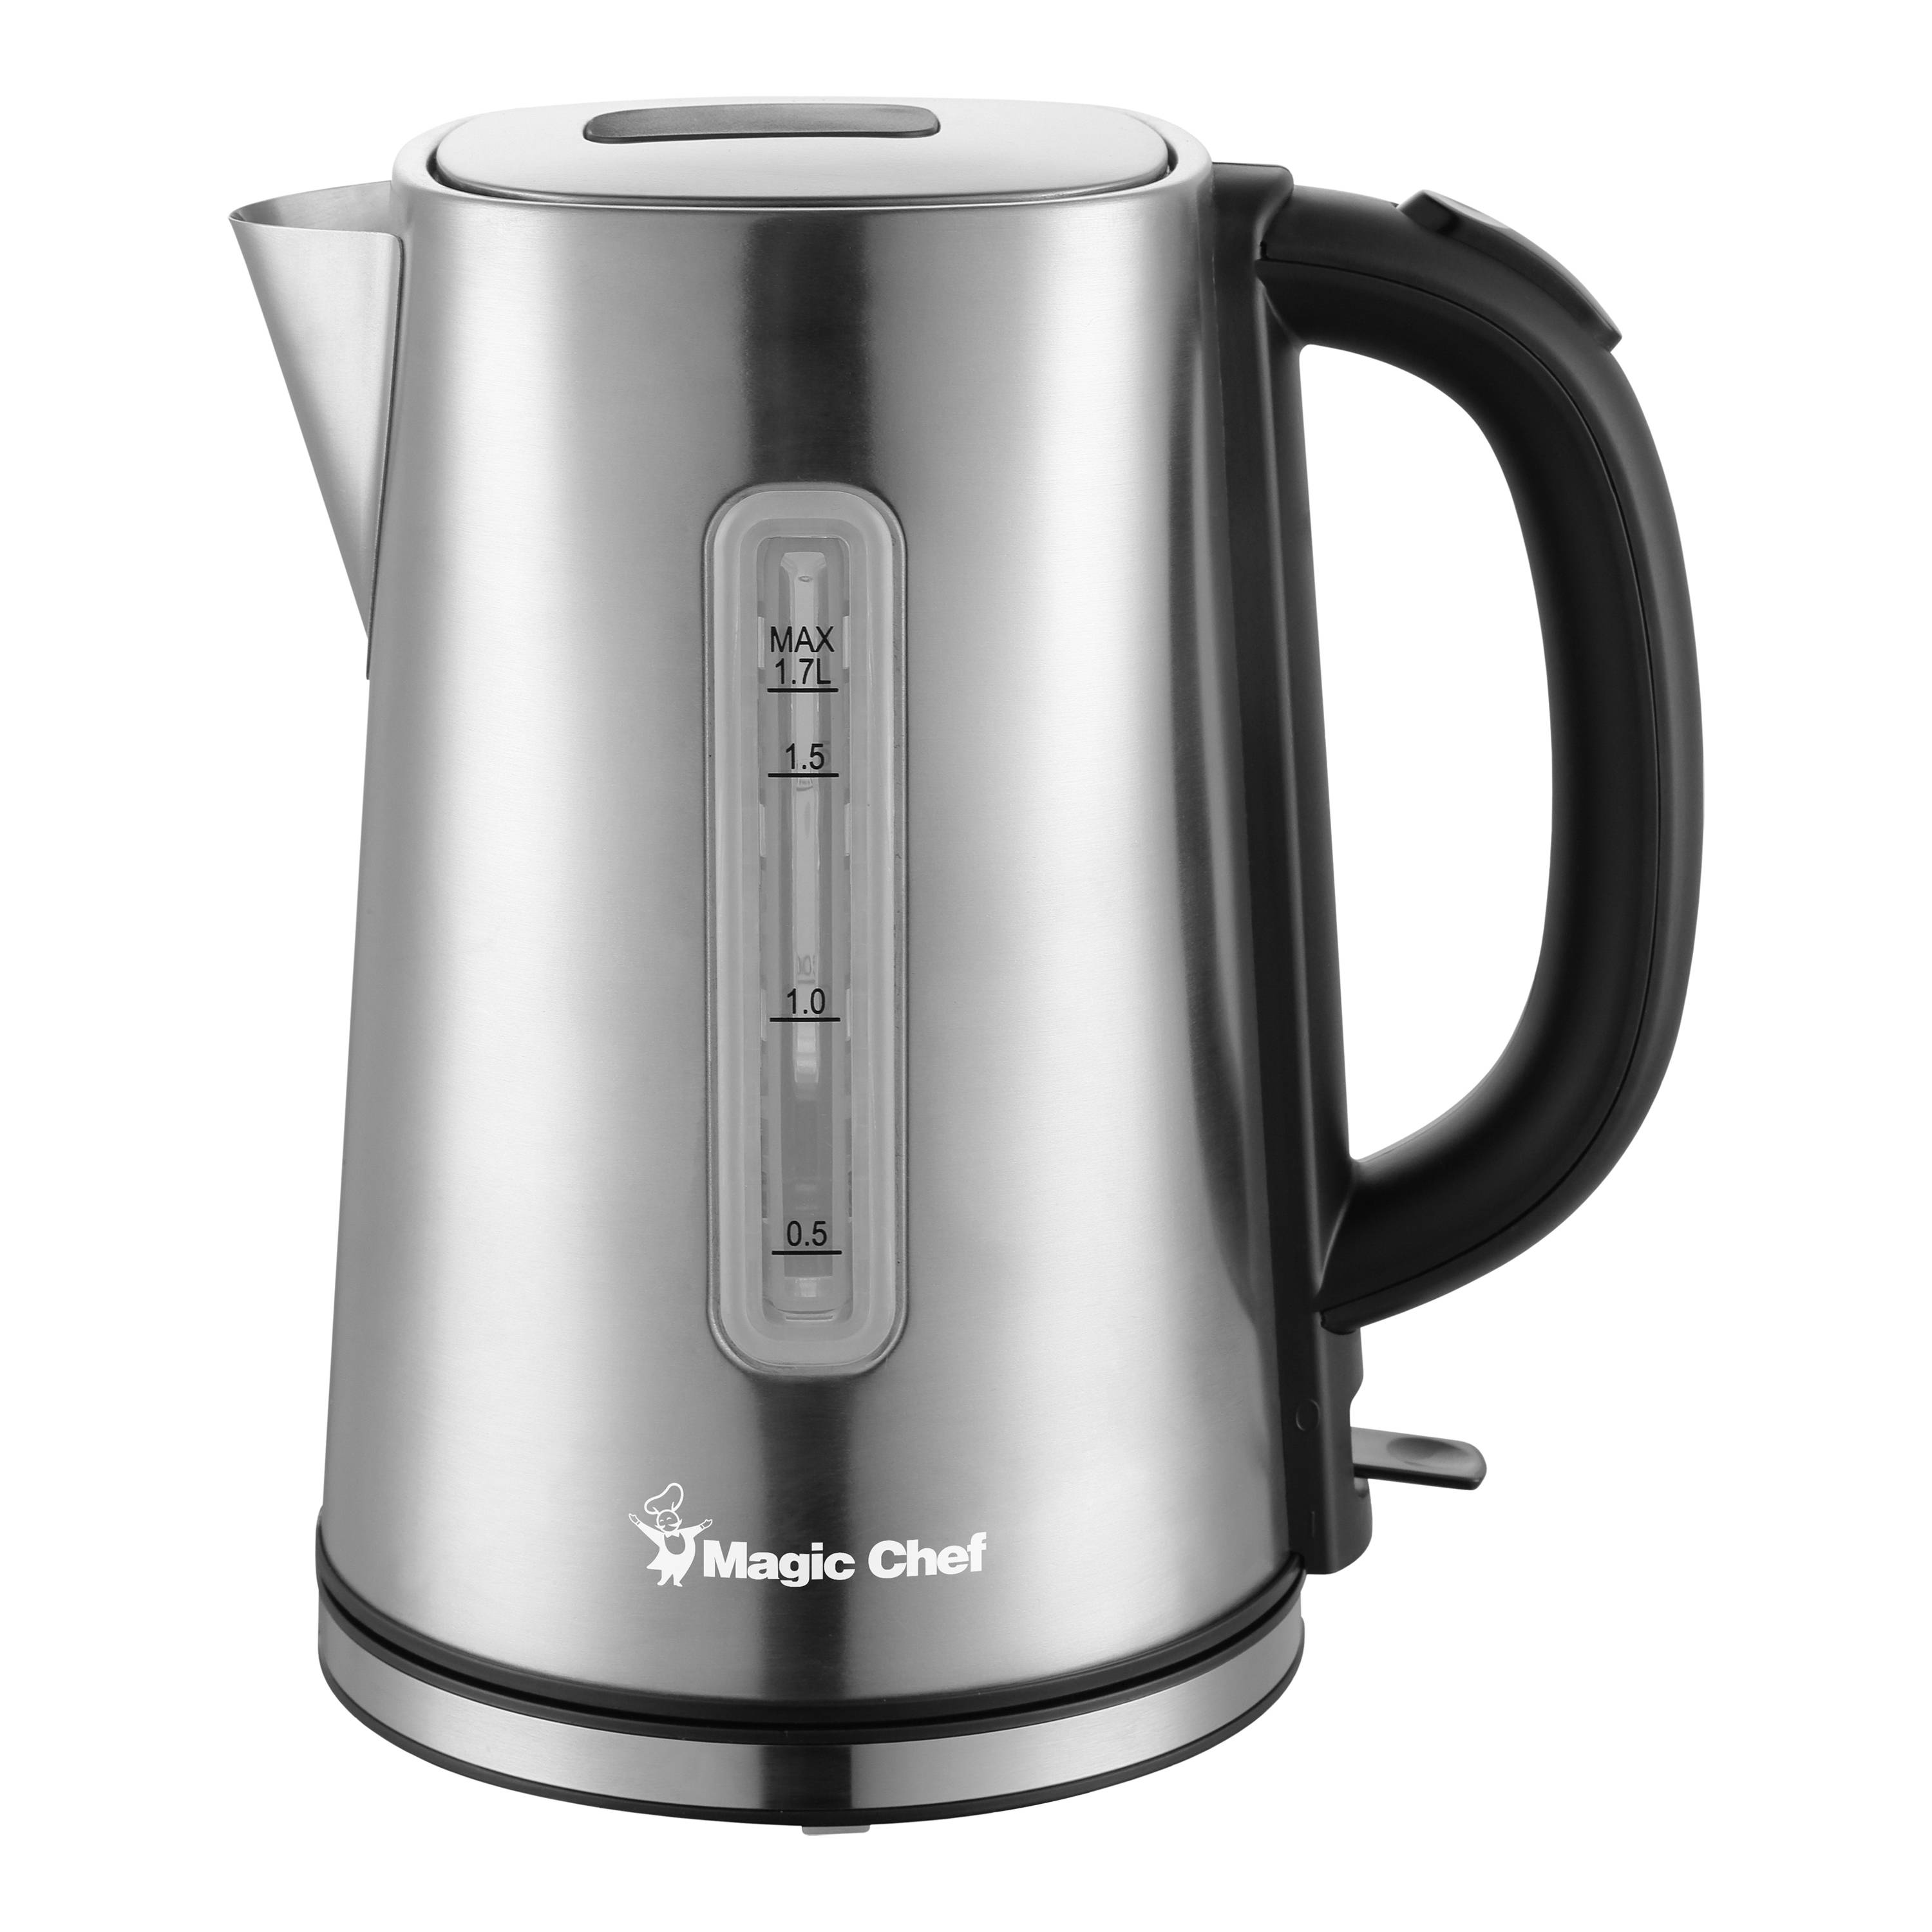 Magic Chef 1.7 Liter Electric Kettle, Stainless Steel